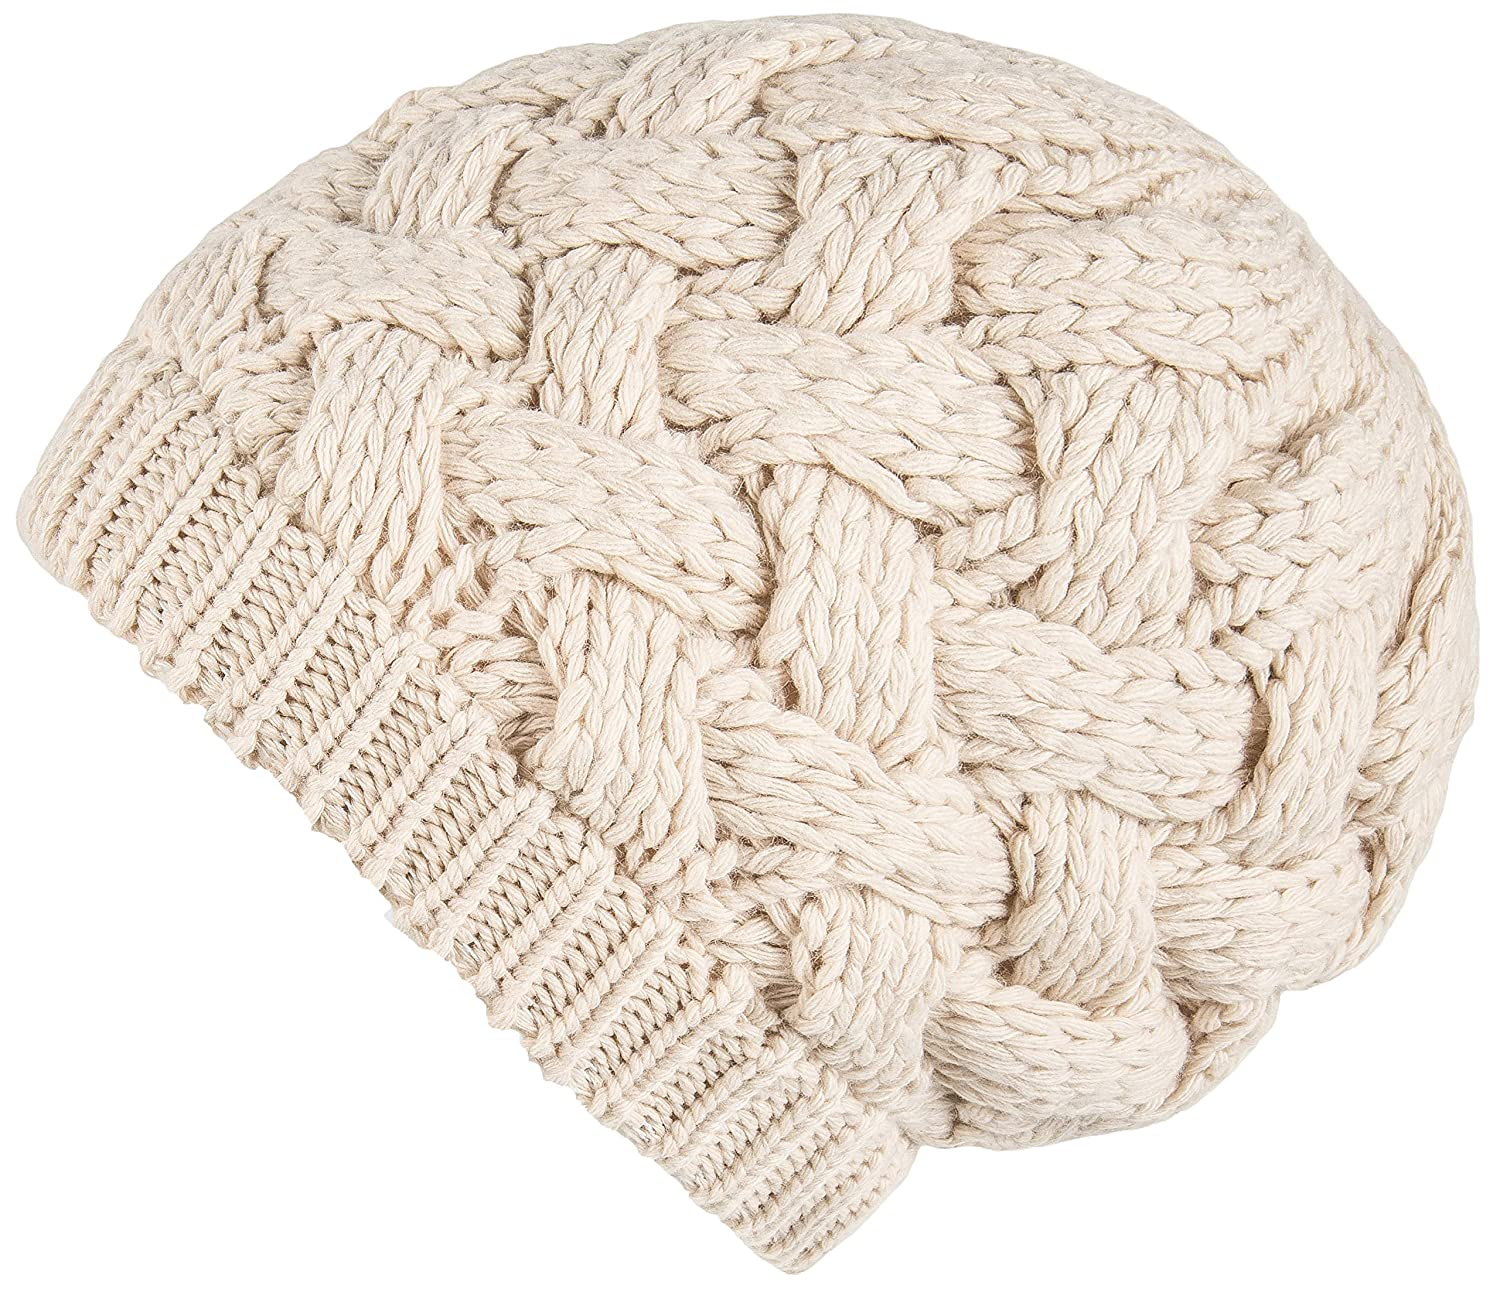 Lilax Cable Knit Slouchy Chunky Oversized Soft Warm Winter Beanie Hat Beige  at Amazon Women s Clothing store  558acc5b7773